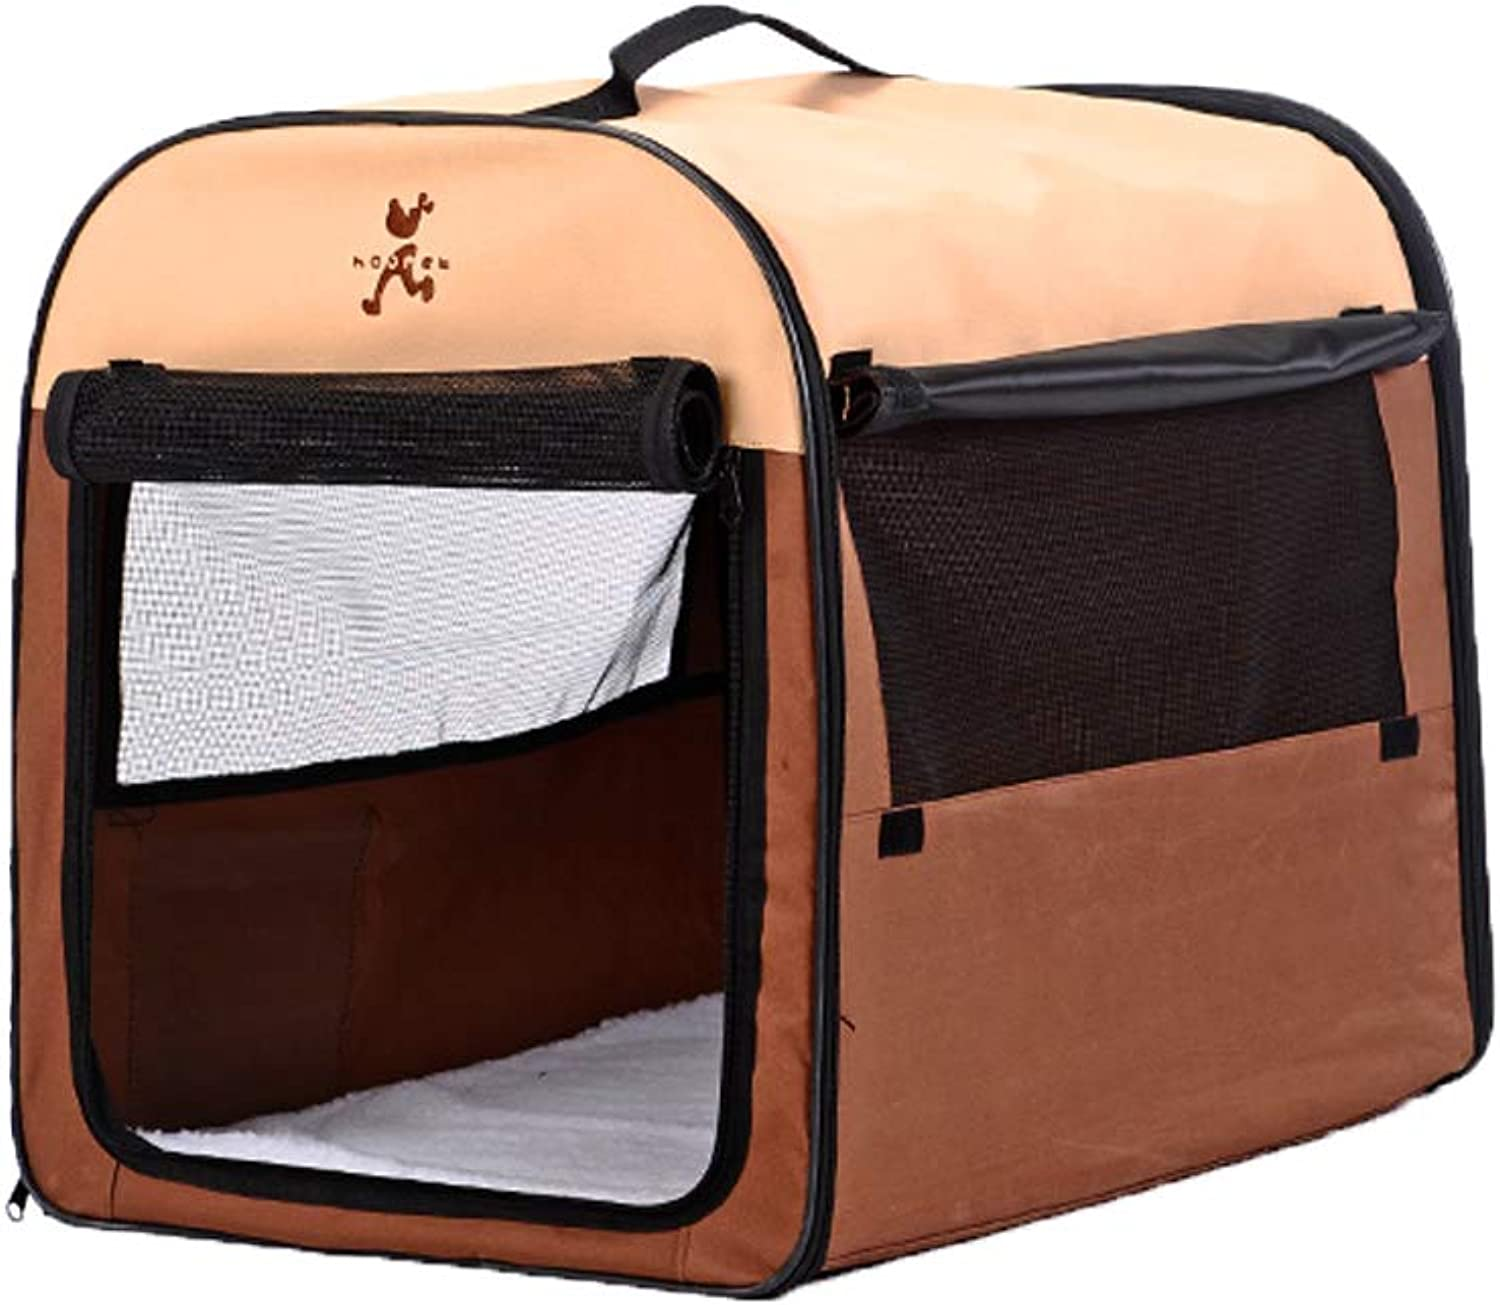 Couch Pet Bed Small Large Dog Kennel Washable Winter Teddy Yurt Tent Cage Suitable for All Seasons Washable,Brown,S